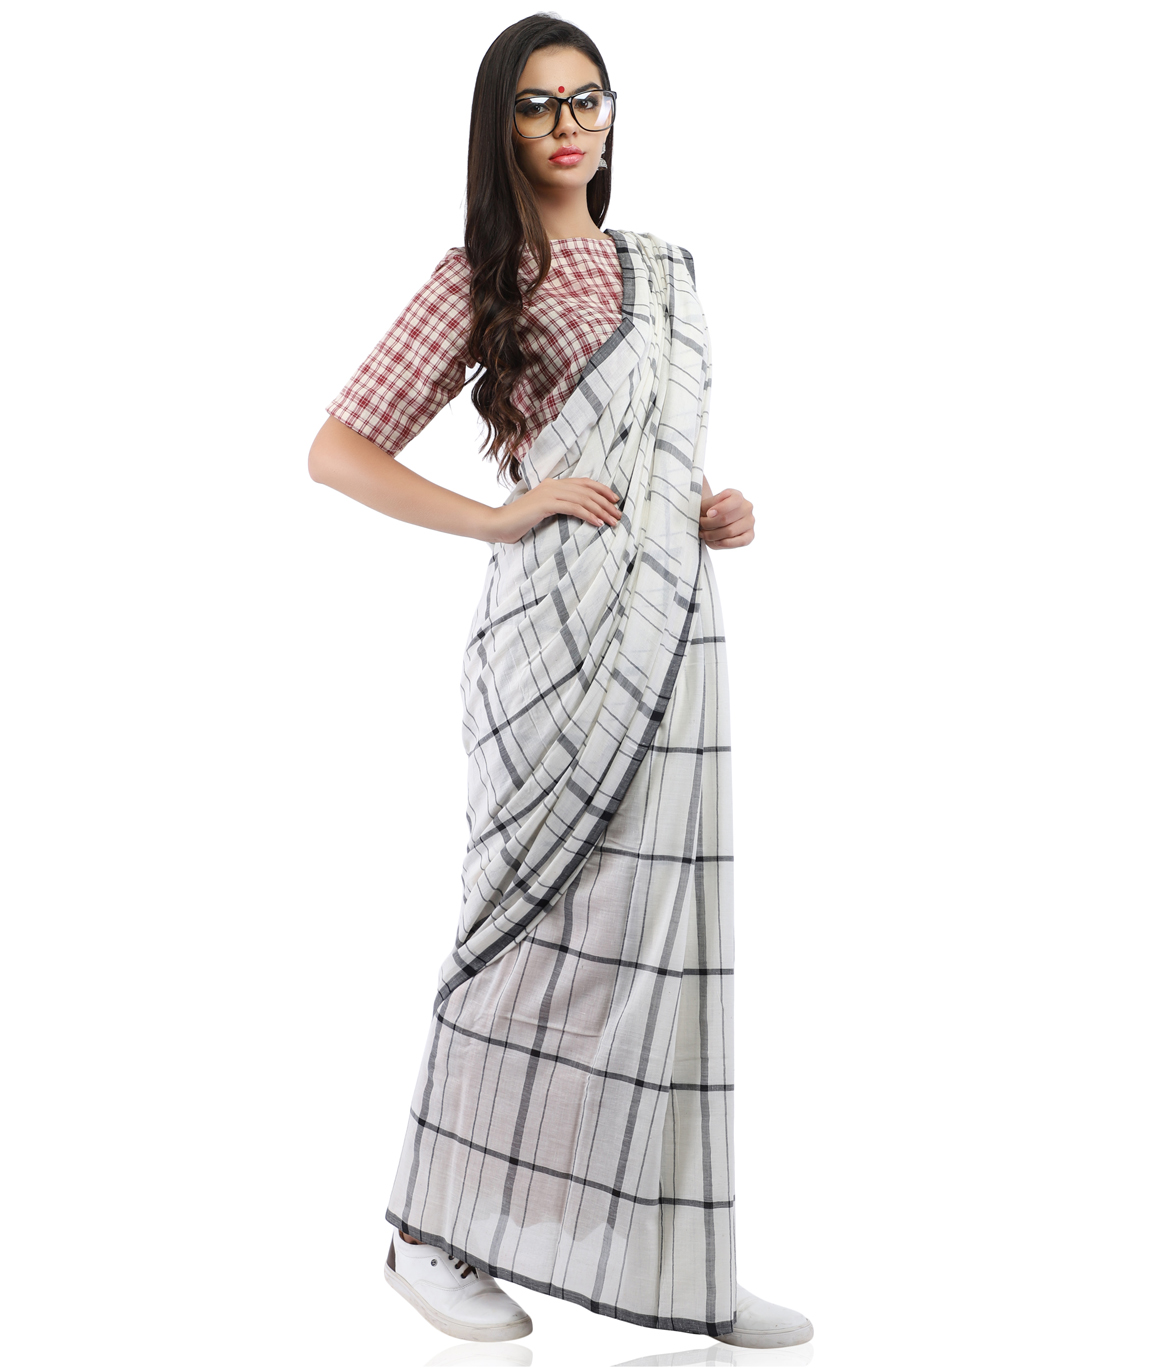 Handloom Pure Cotton Checks Saree in White and Black With Blouse Piece